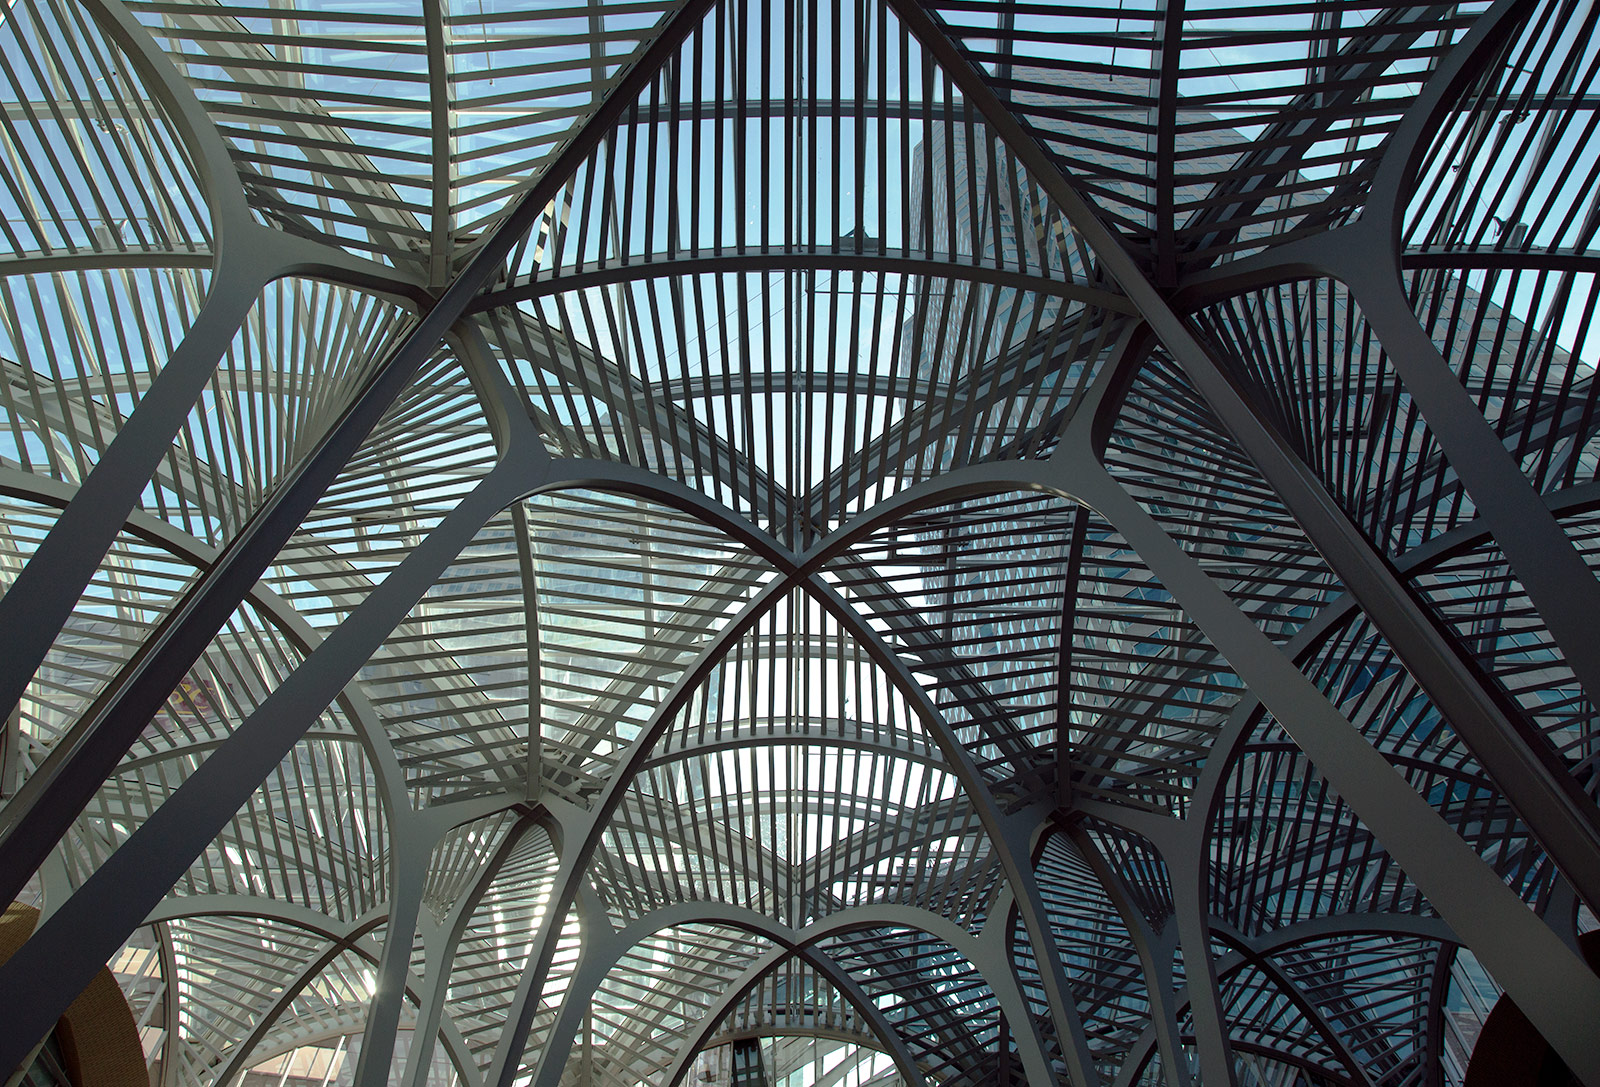 20140708. Looking up at the intricate roof of Sam Pollock Square (Architect Santiago Calatrava, c.1992) in Brookfield Place, Toronto.